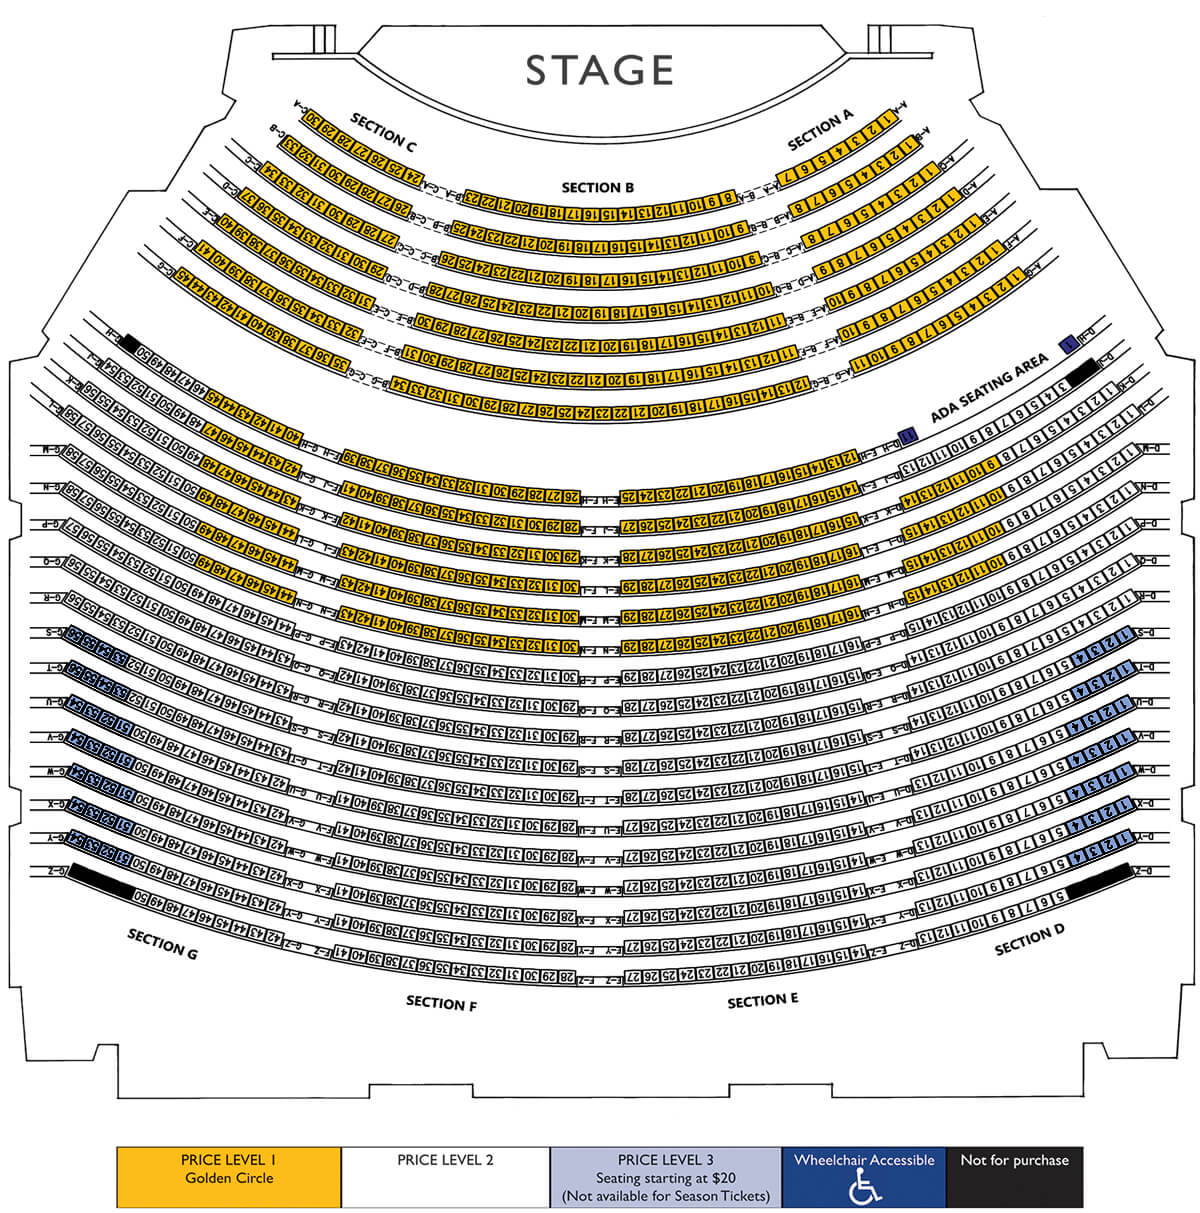 Picture of the Seating layout for the NIACC Auditorium